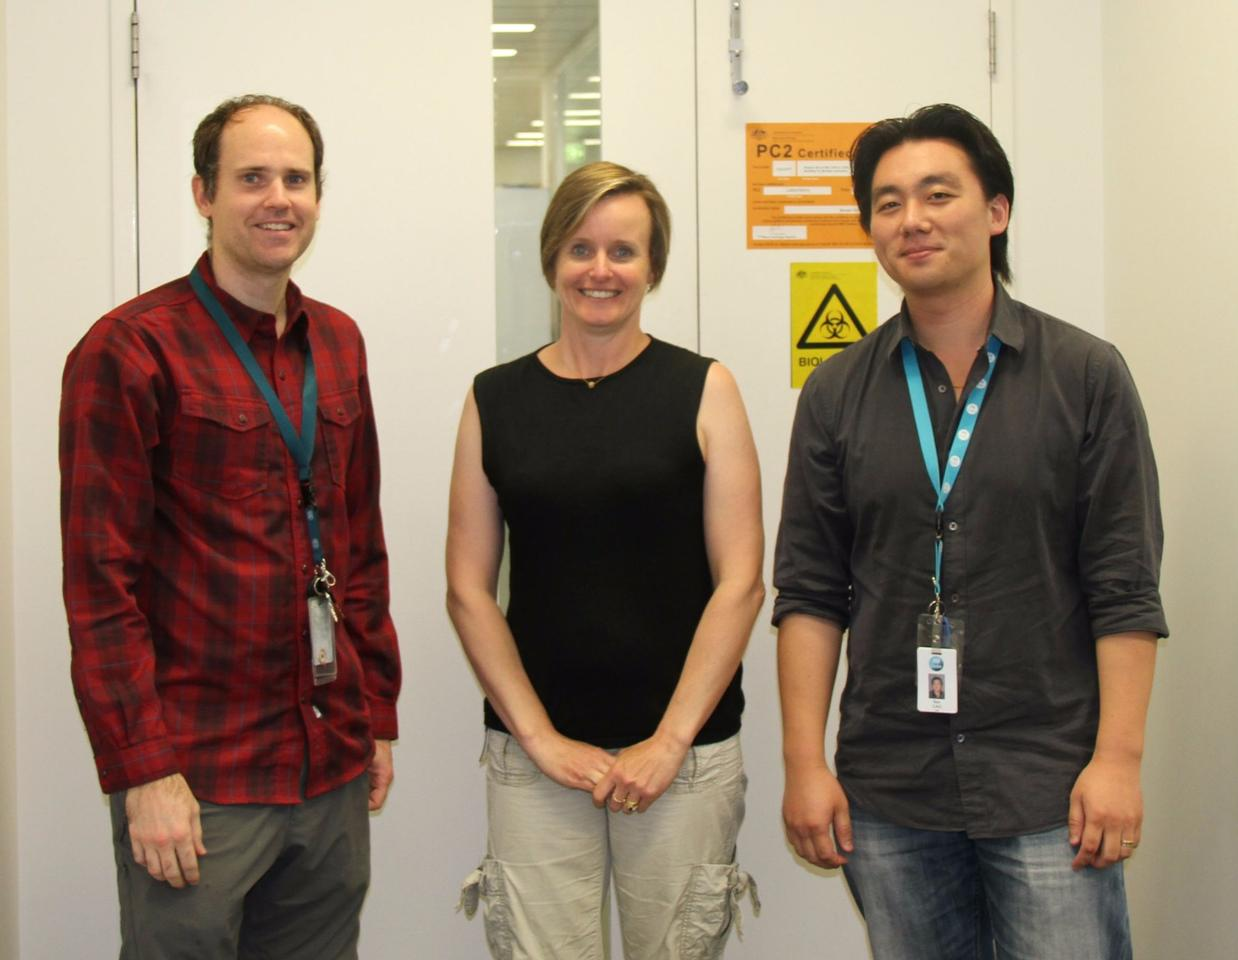 CSIRO's Dr Chad Heazlewood, Dr Susie Nilsson and Dr Ben Cao